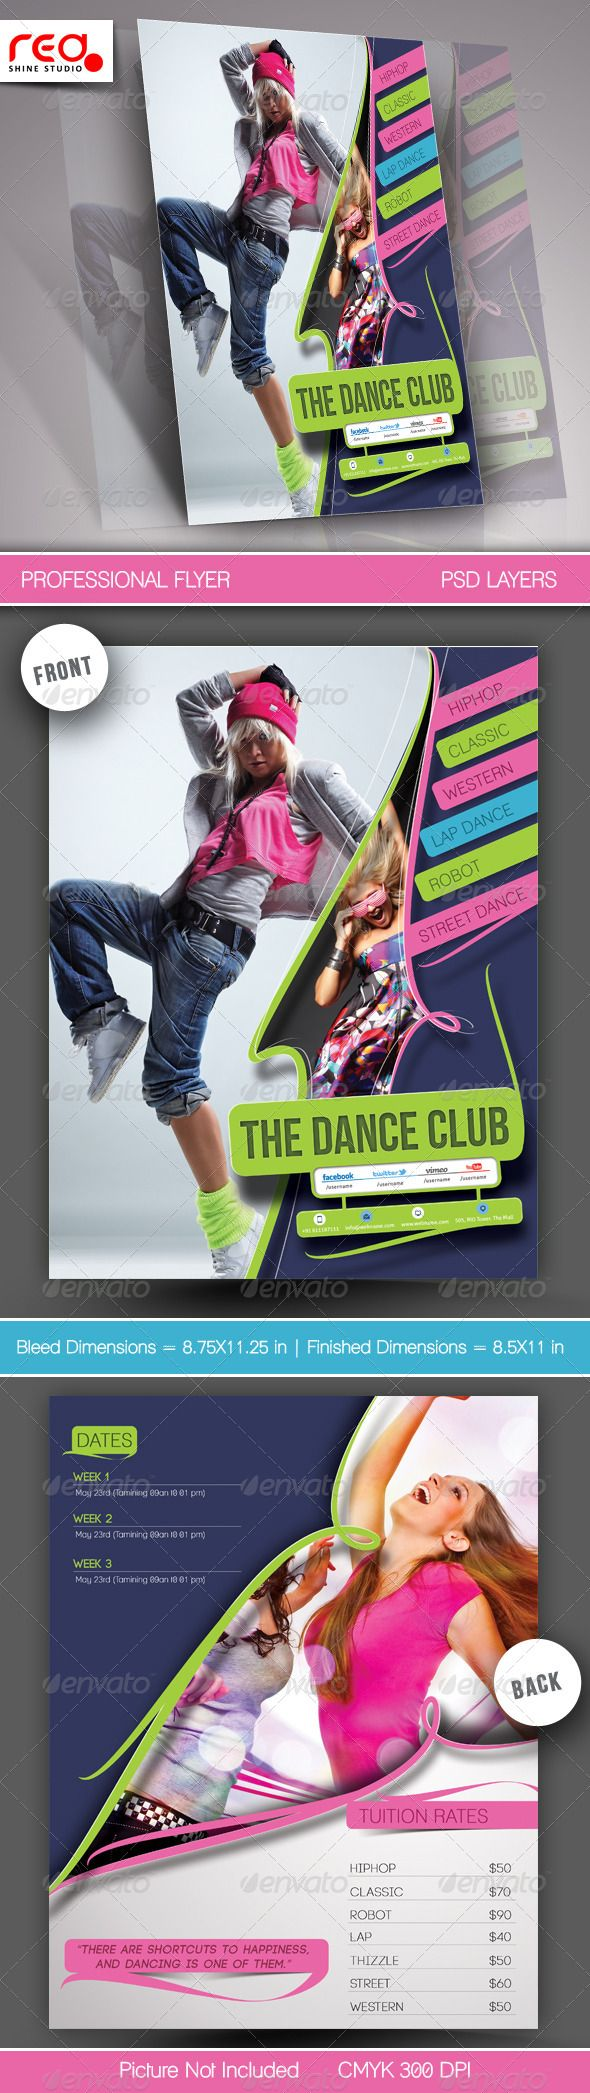 Dance Academy Flyer & Poster Template - 2 | Dance academy and ...